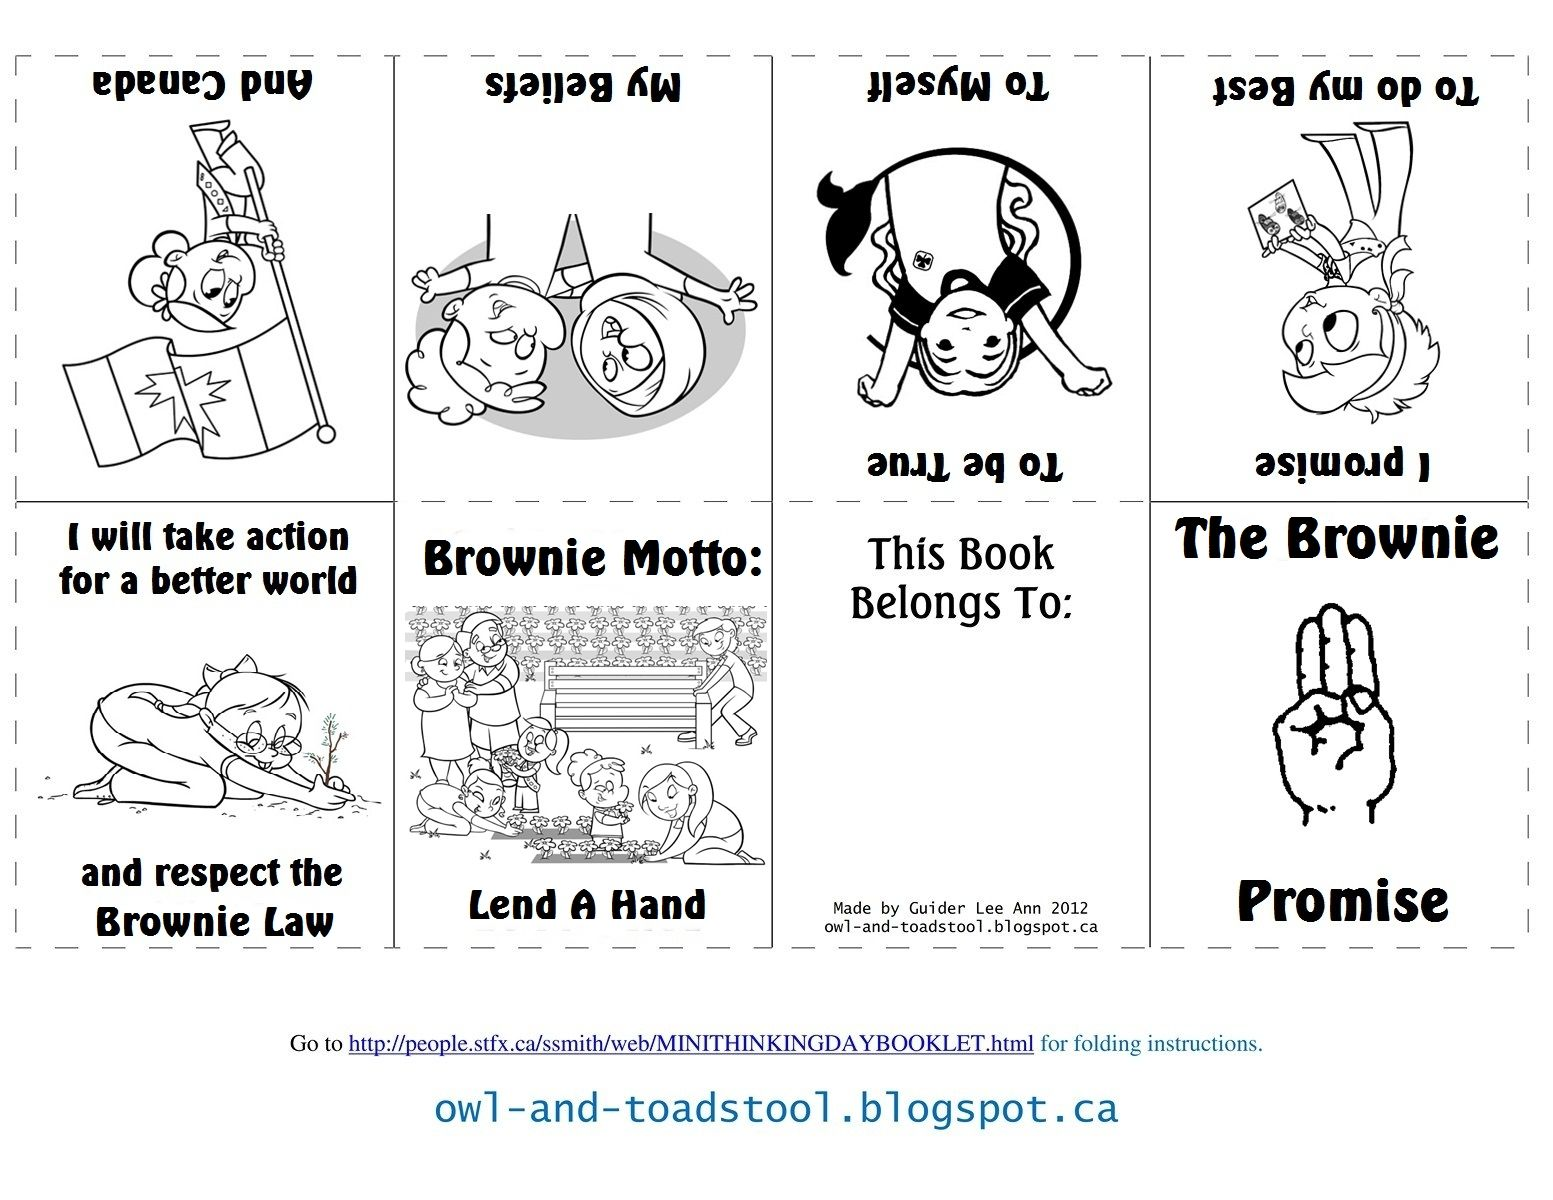 Canadian Brownie Promise mini colouring book owl-and